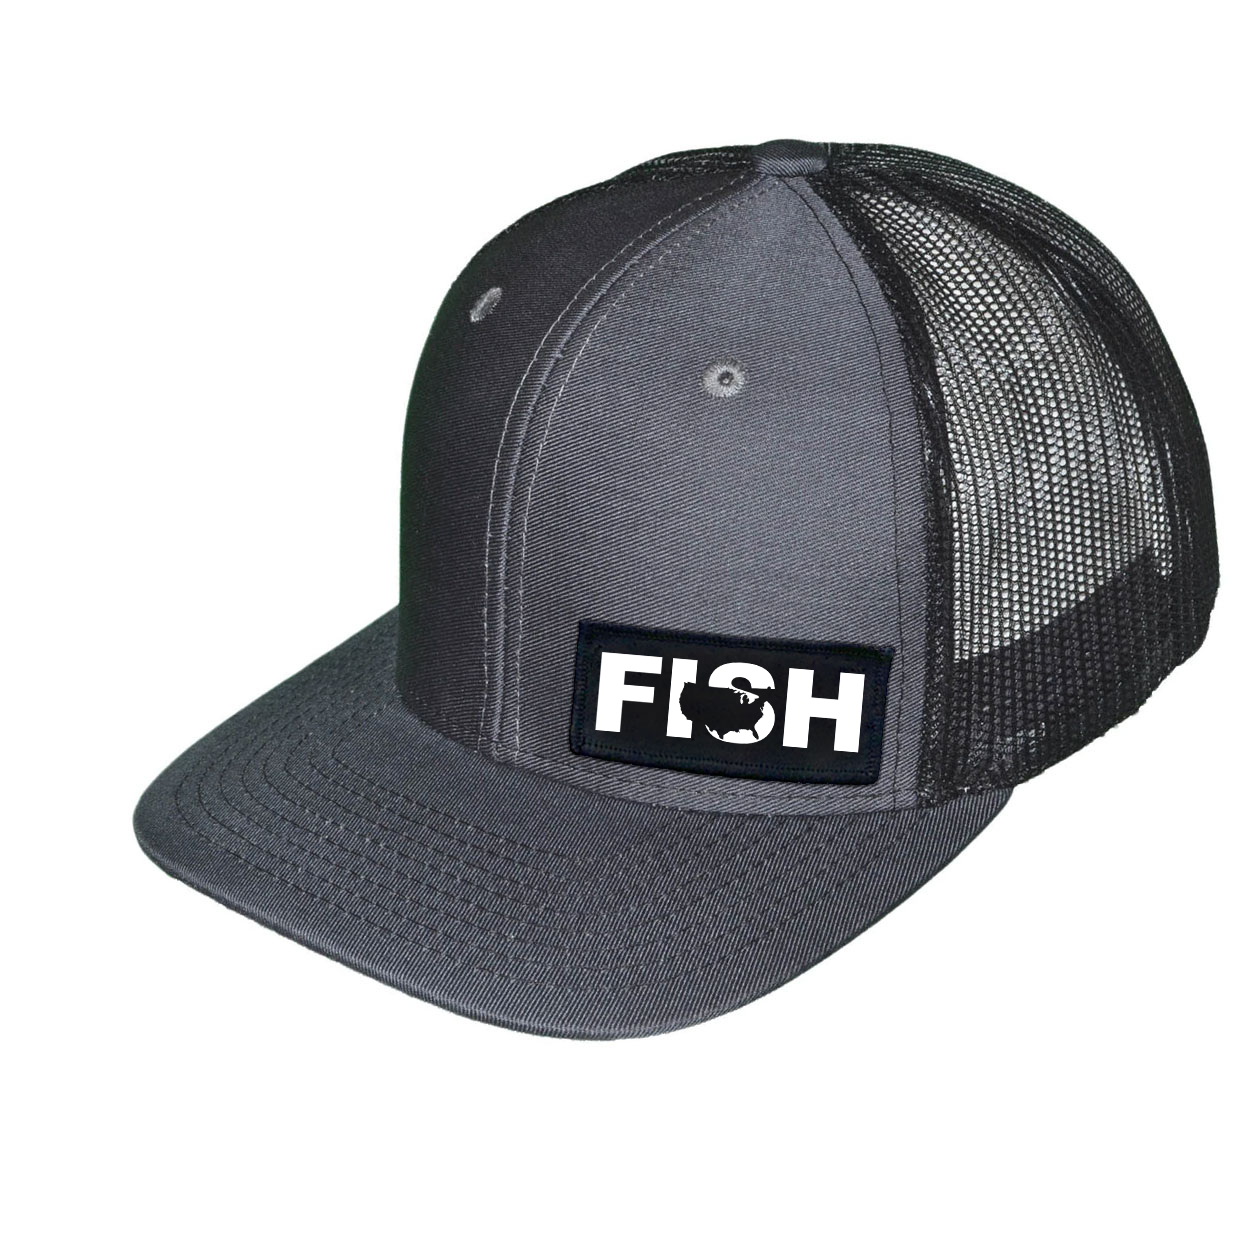 Fish United States Night Out Woven Patch Snapback Trucker Hat Dark Gray/Black (White Logo)